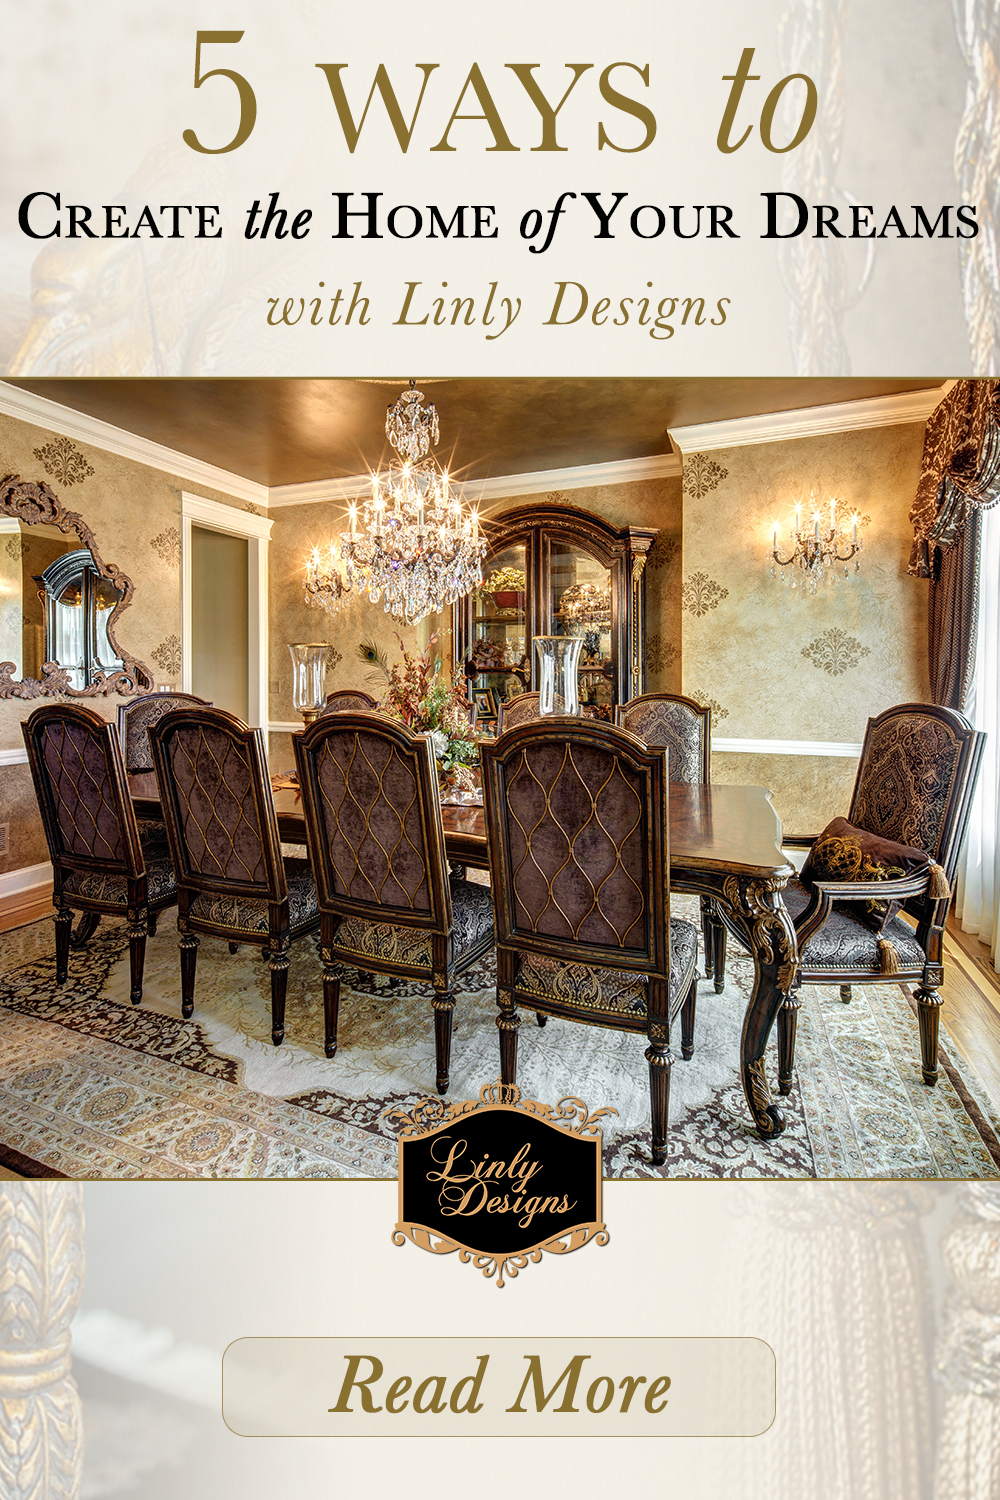 5 Ways to create the home of your dreams with linly designs